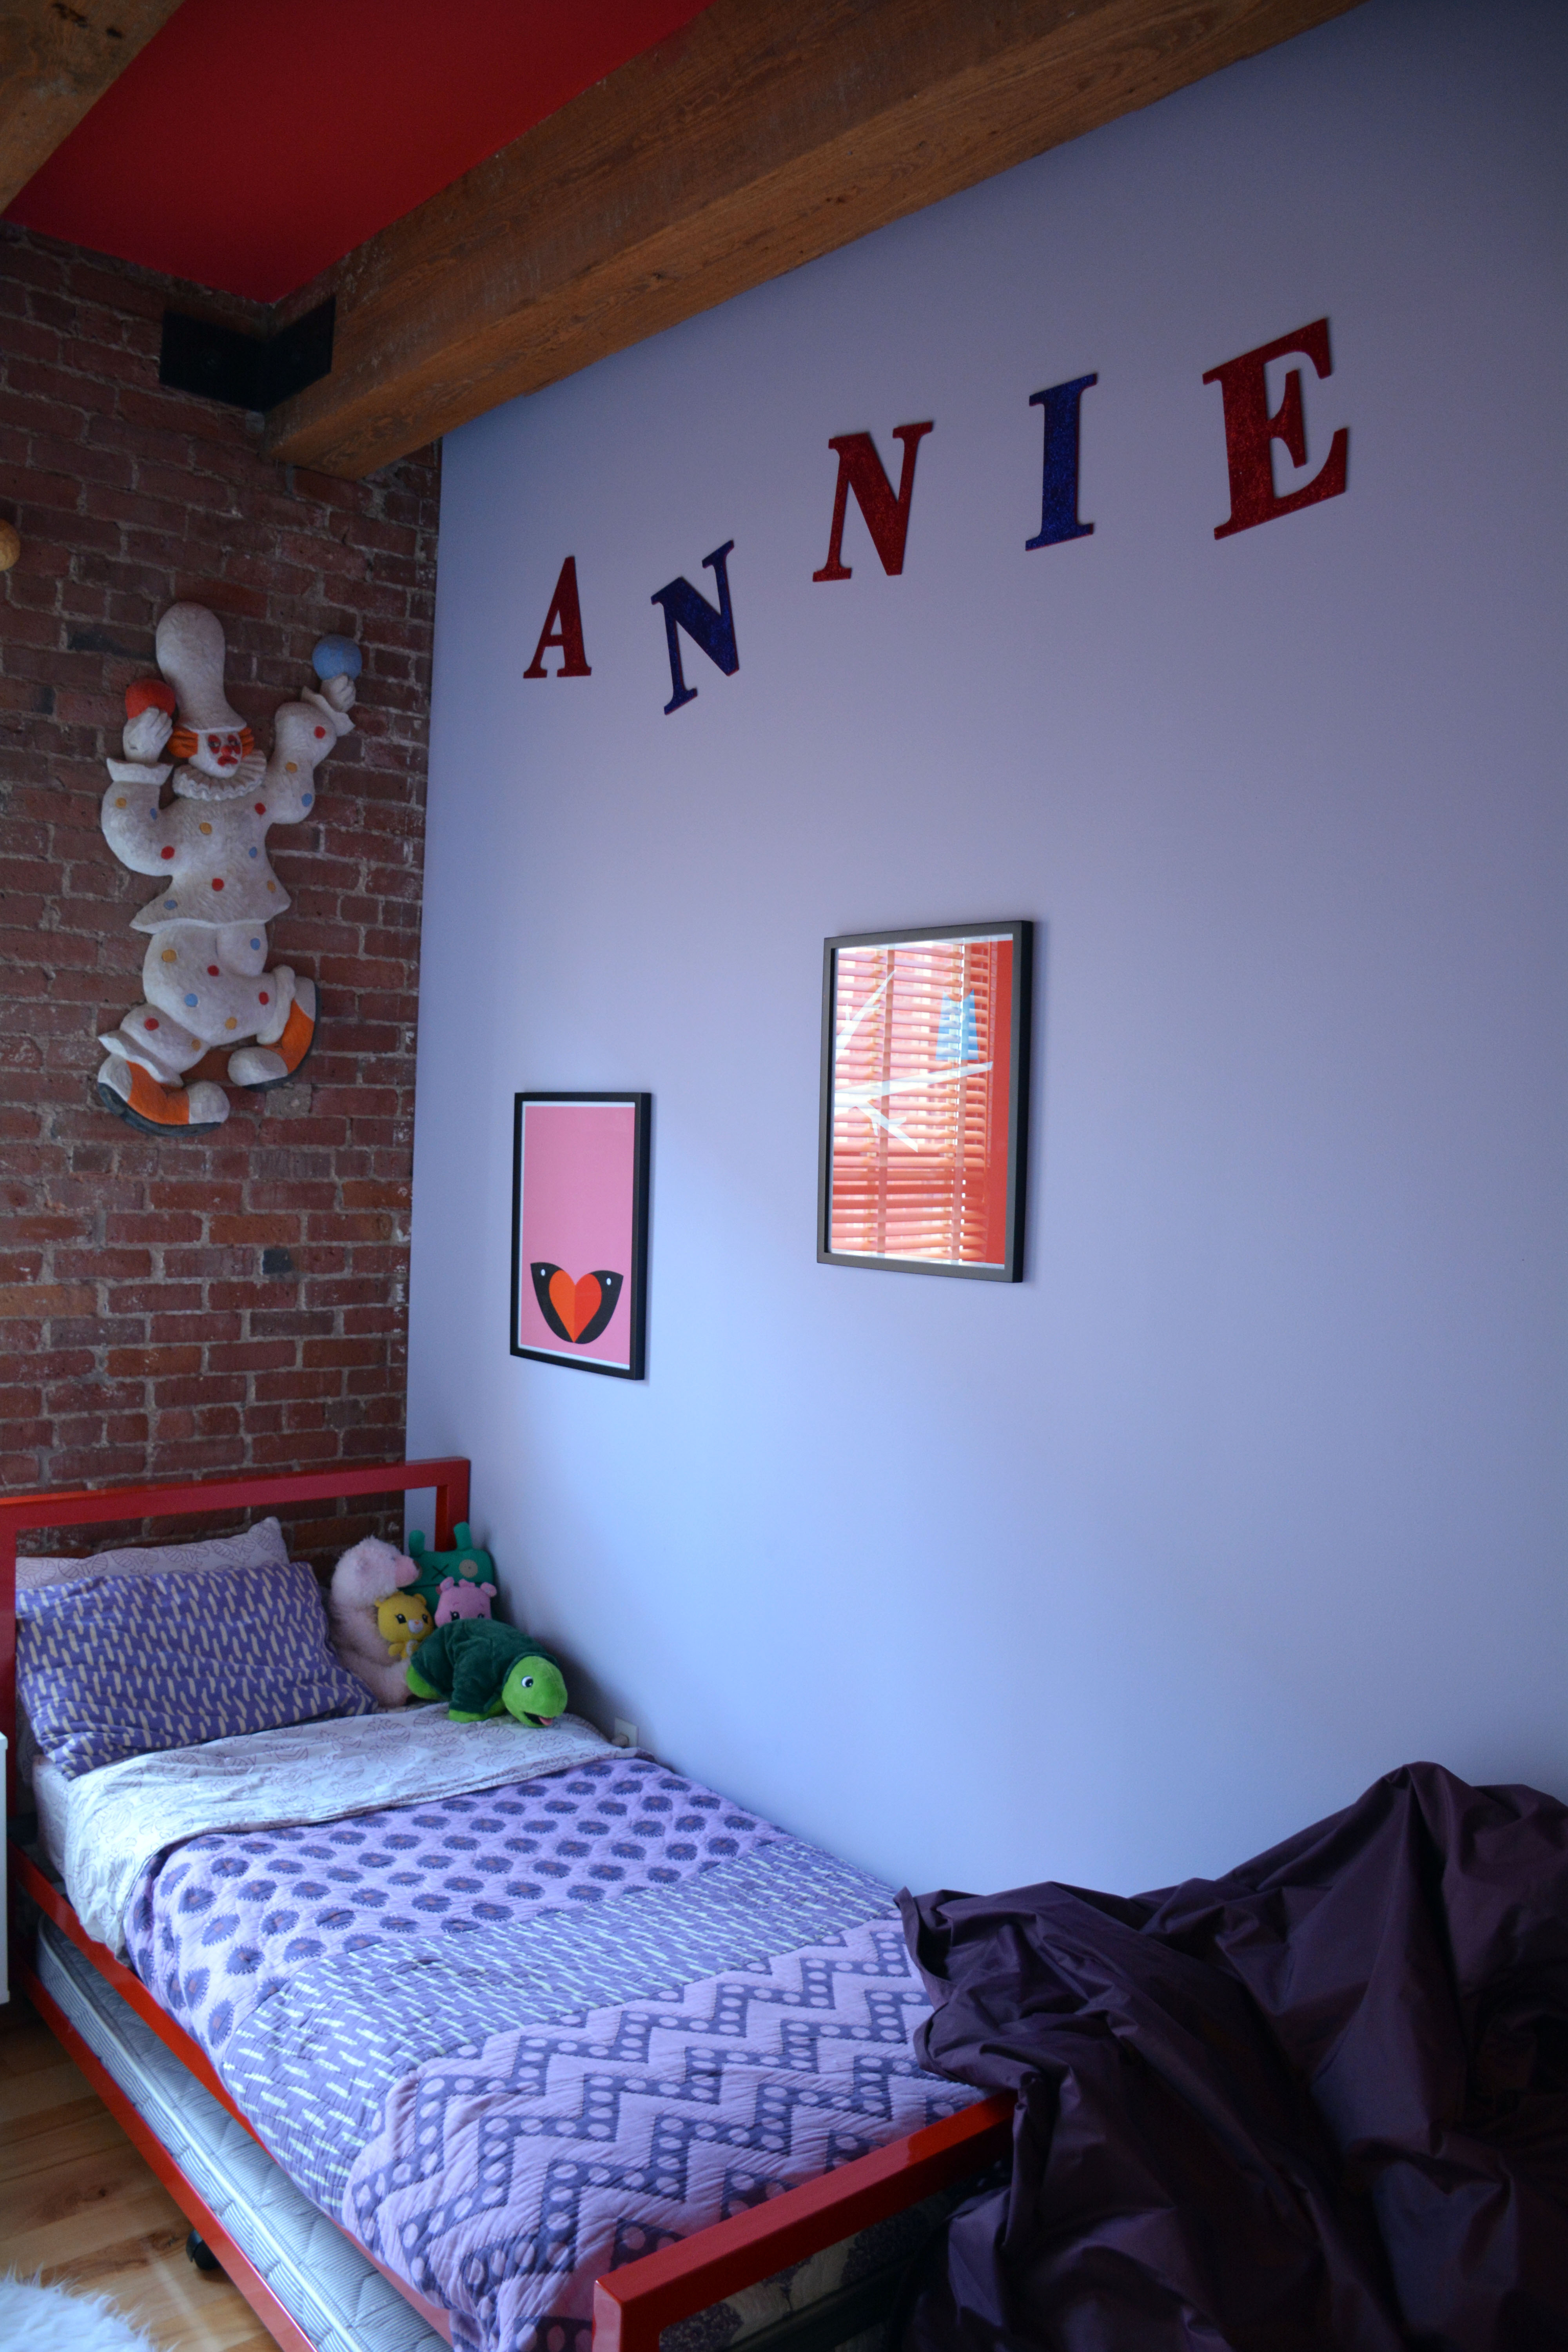 ANNIE'S ROOM